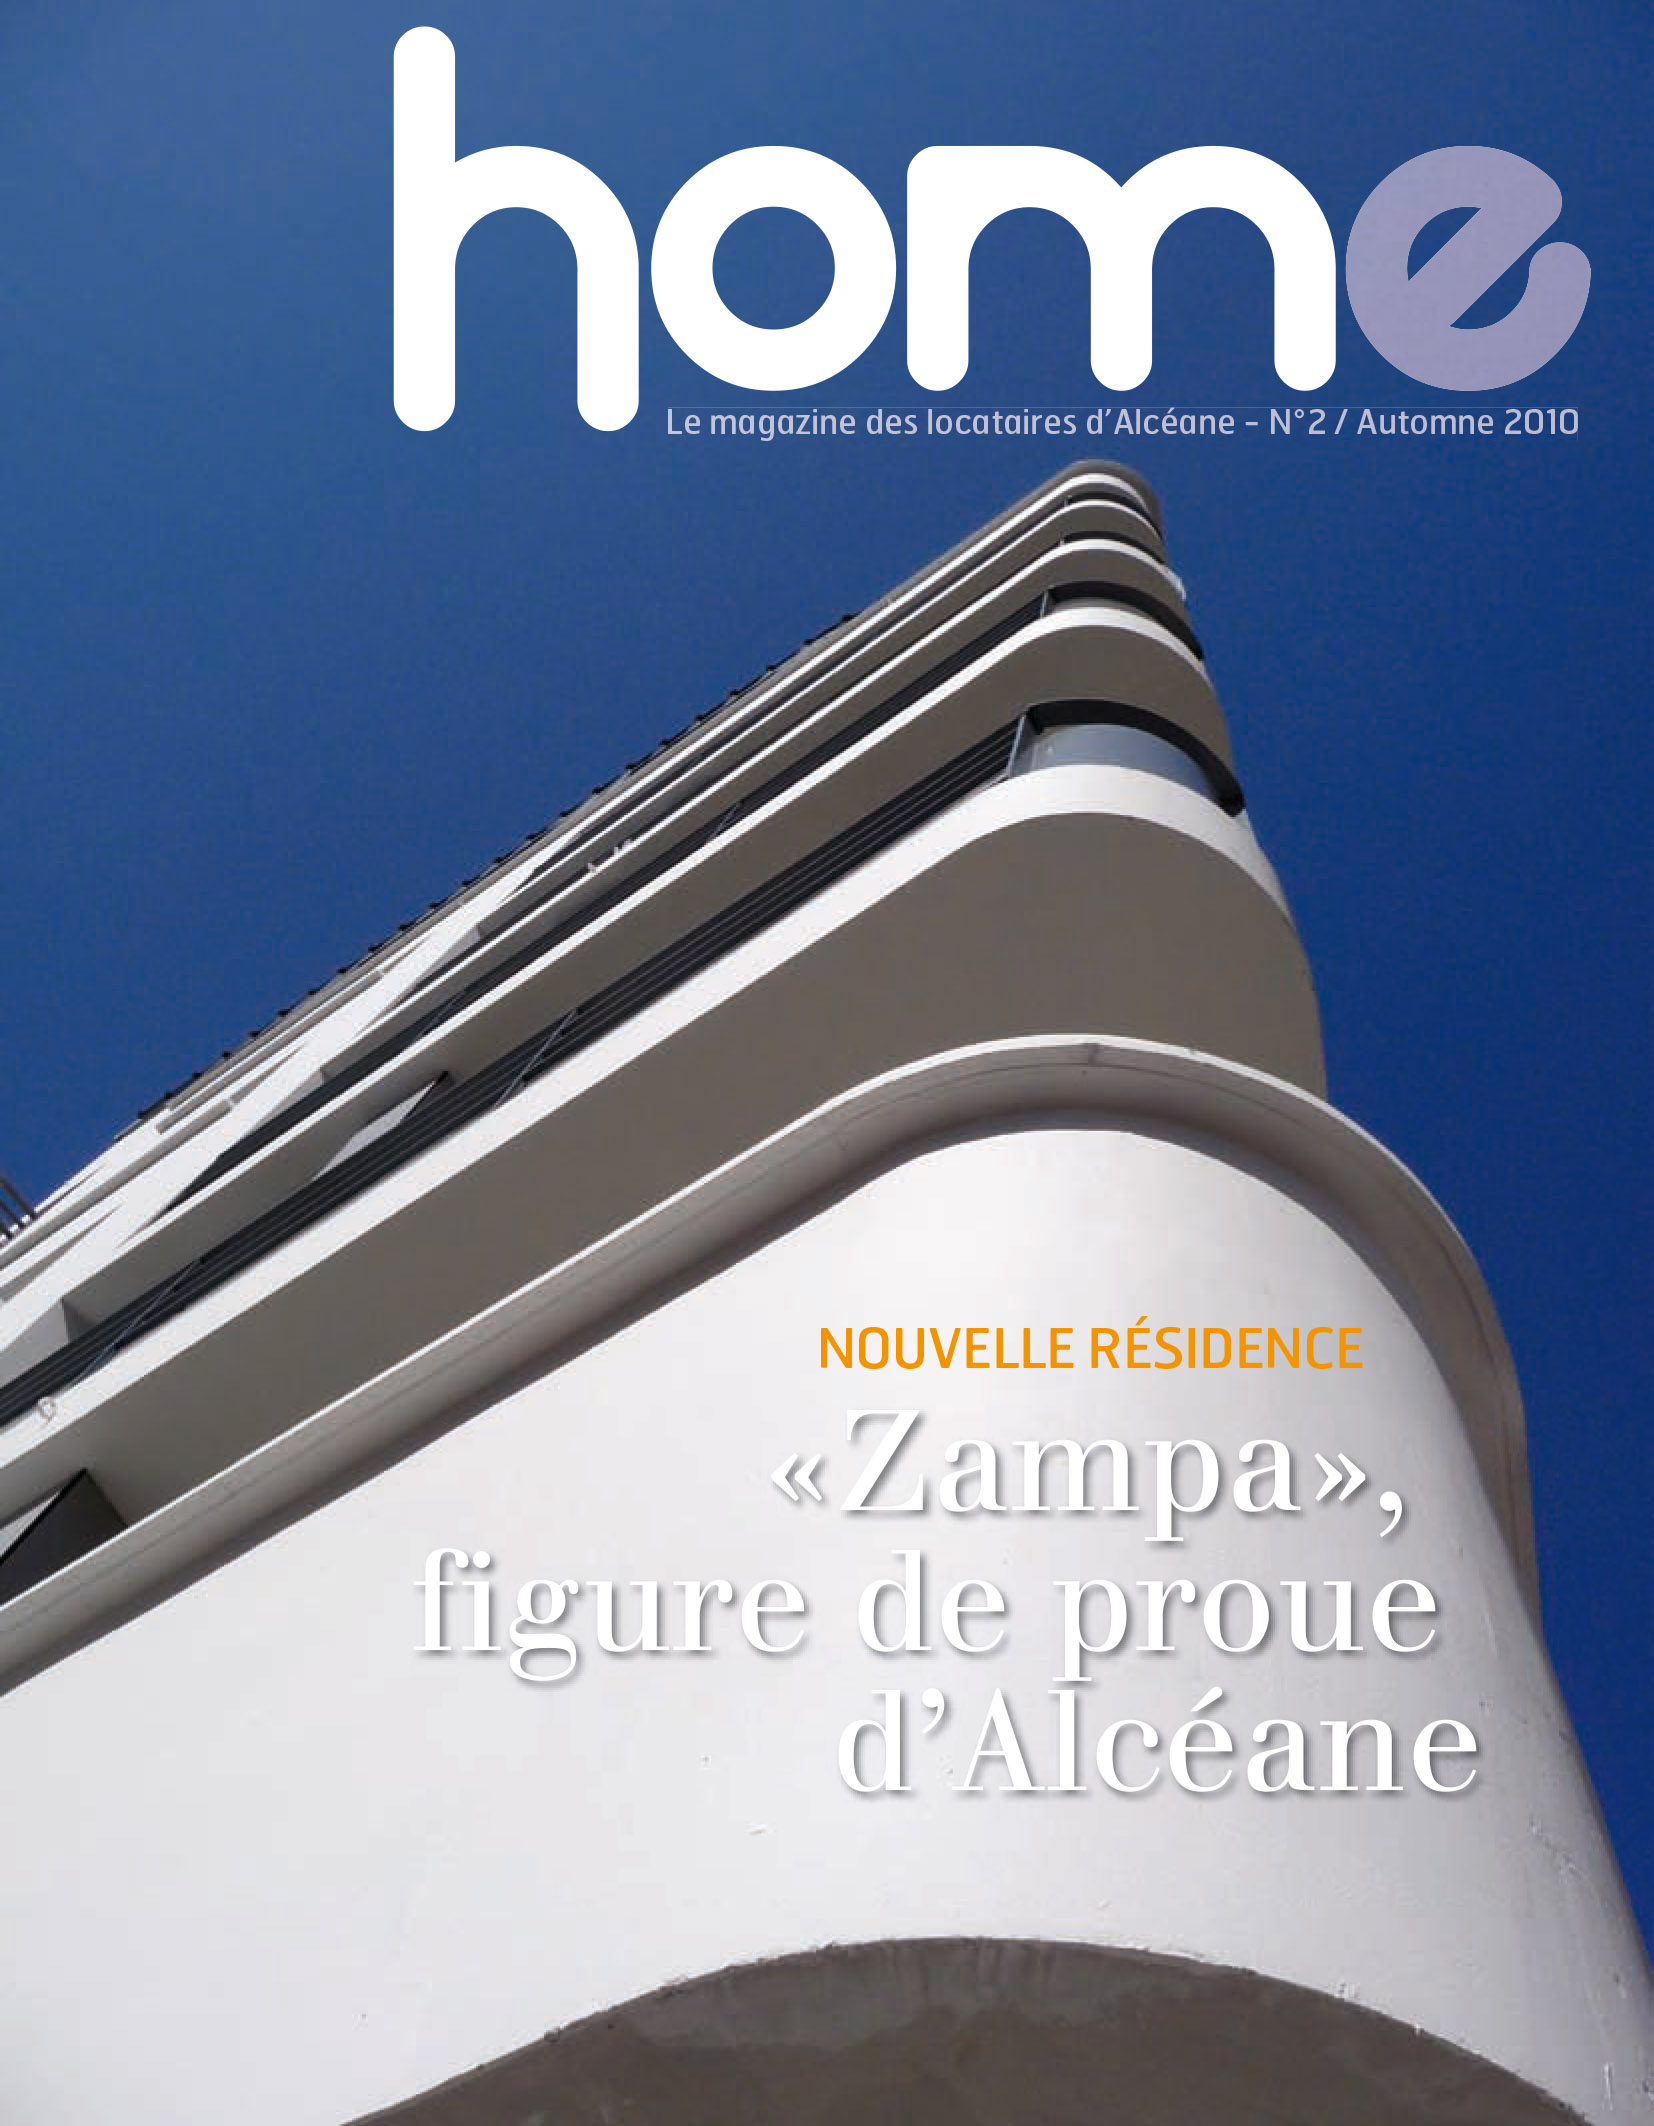 Couverture magazine Home 2